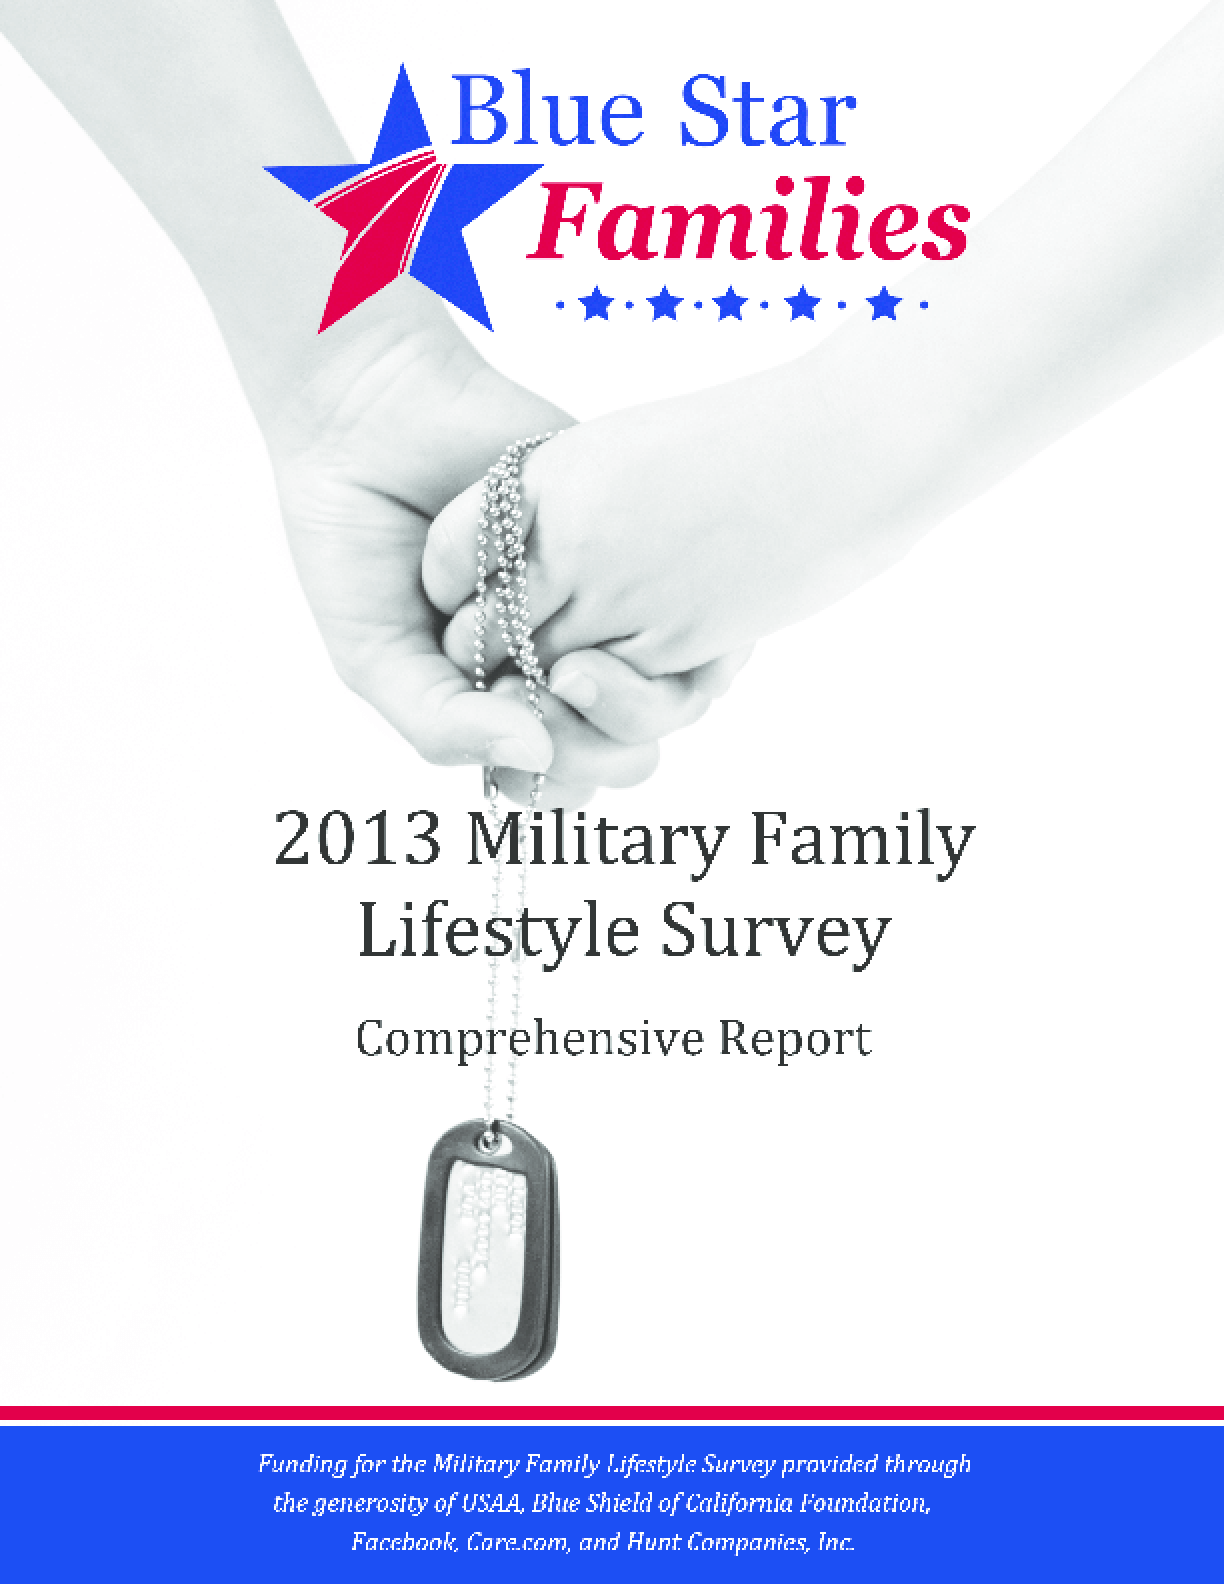 2013 Military Family Lifestyle Survey: Comprehensive Report